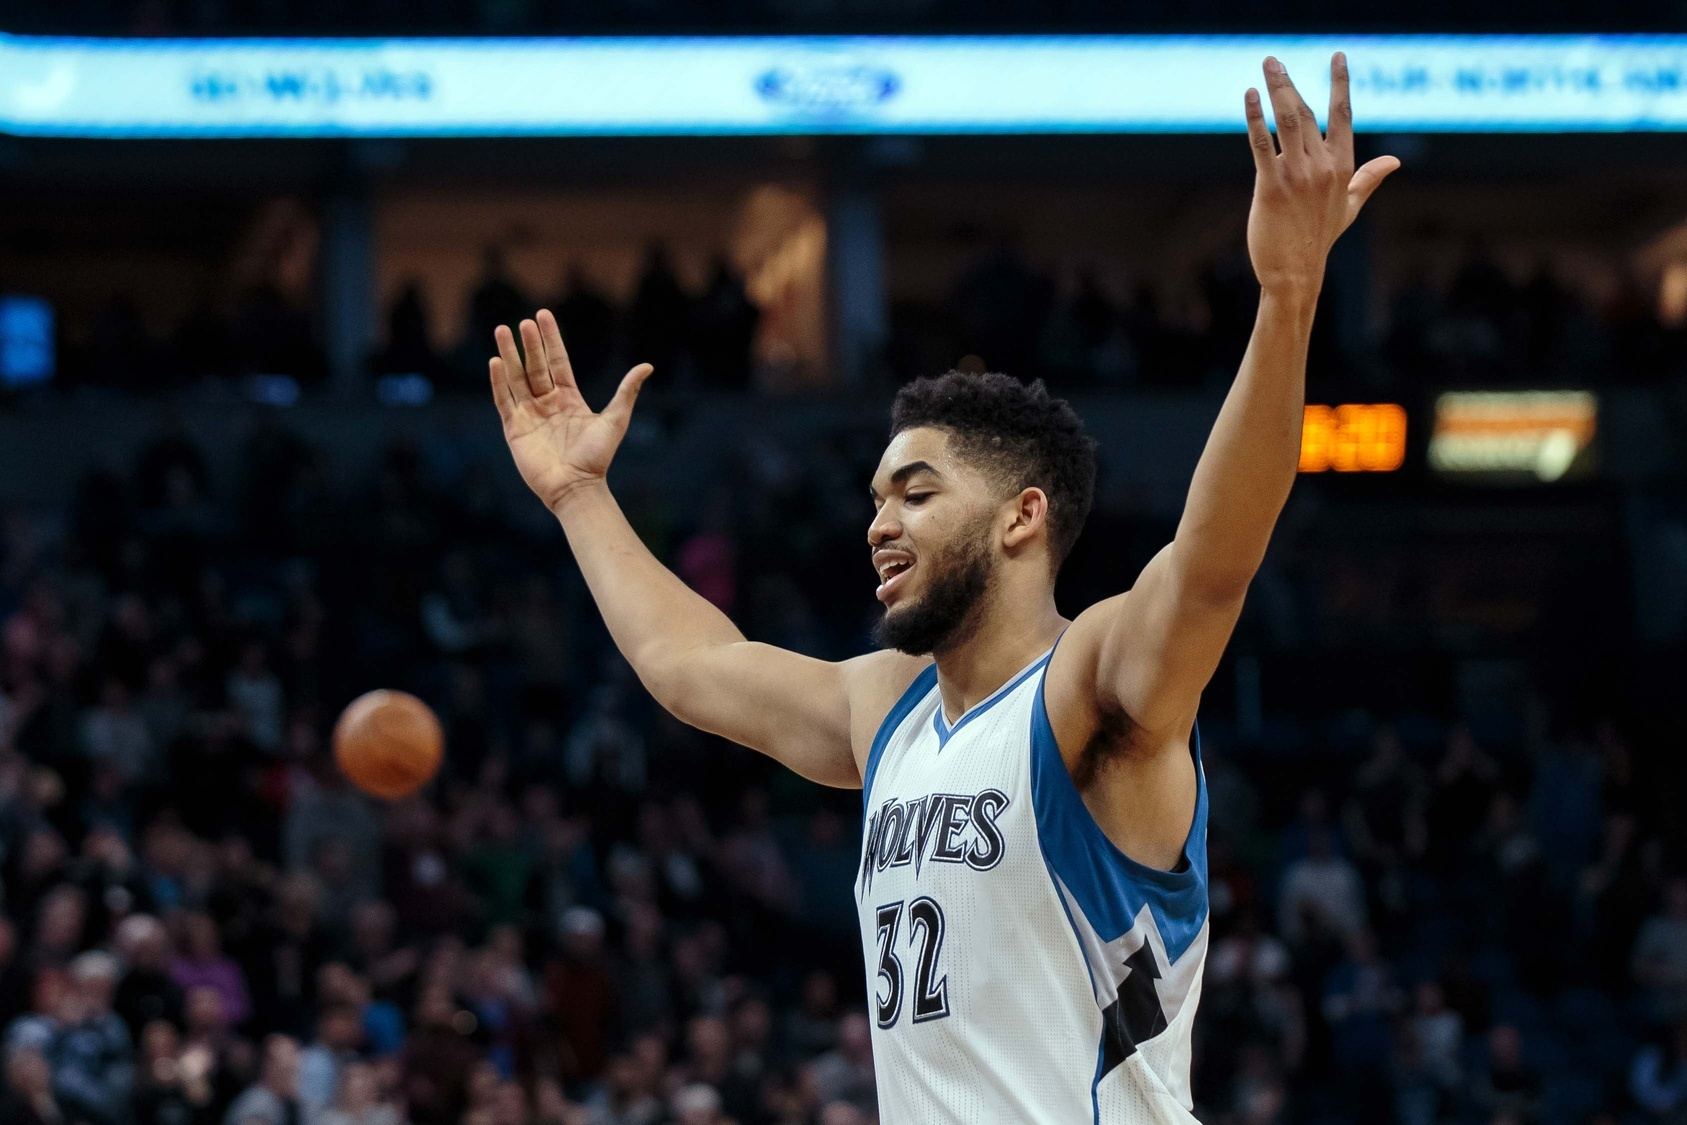 How Karl-Anthony Towns and Minnesota Can Reach the Next Level  Adam Mares   NBA Wraparound - VICE Sports 39e74e0a3